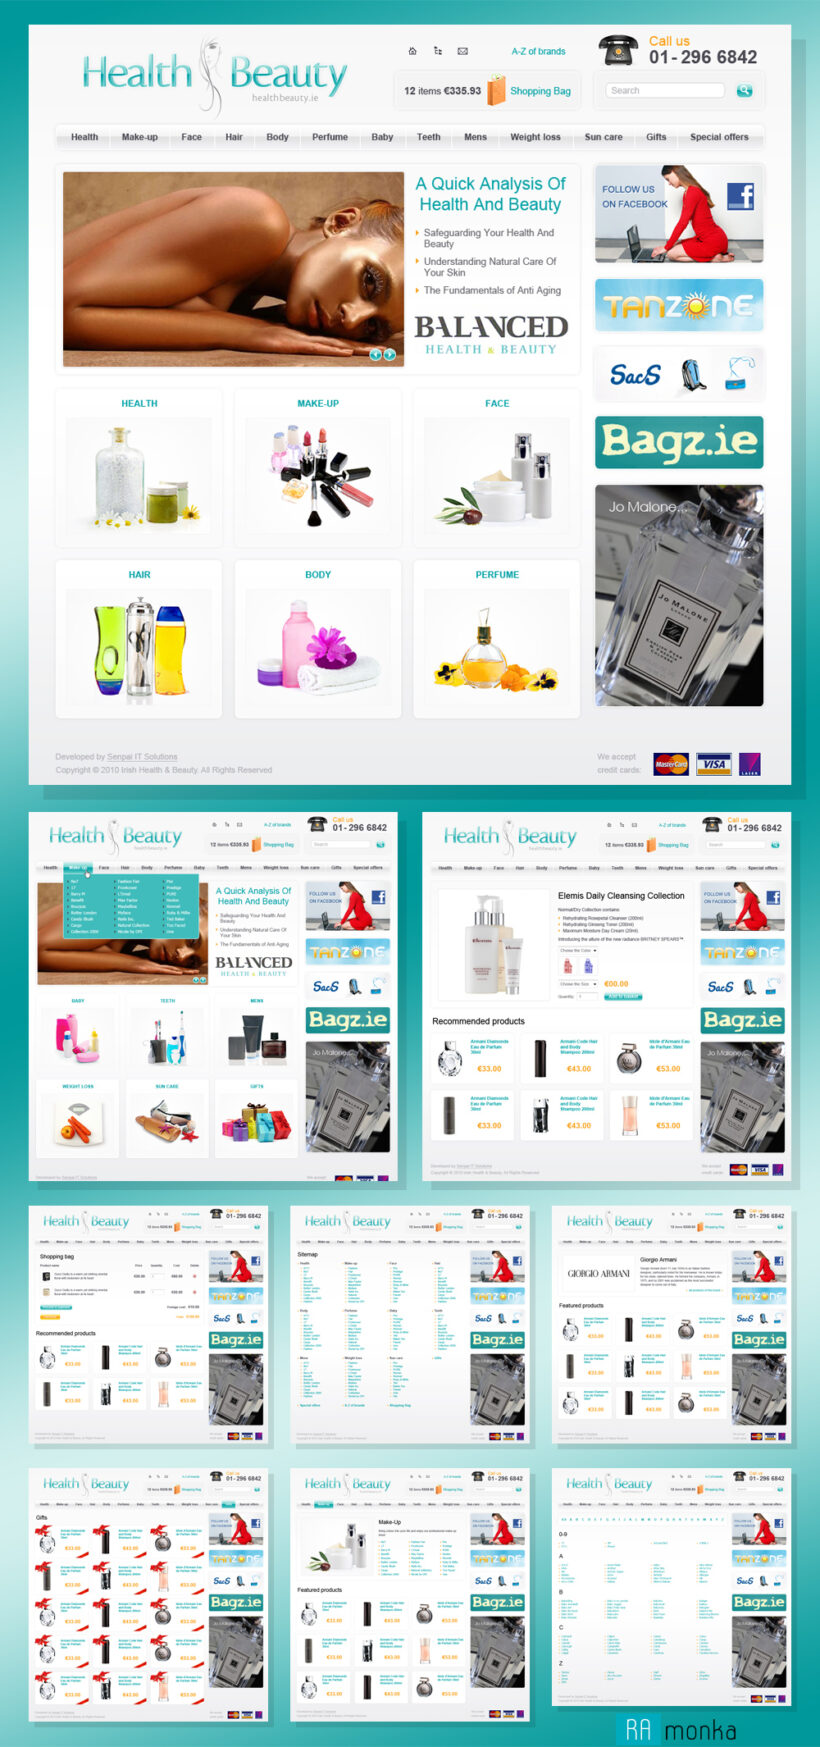 Web Design and its HTML Coding for Beauty and Health Products Online Store Irish Health and Beauty